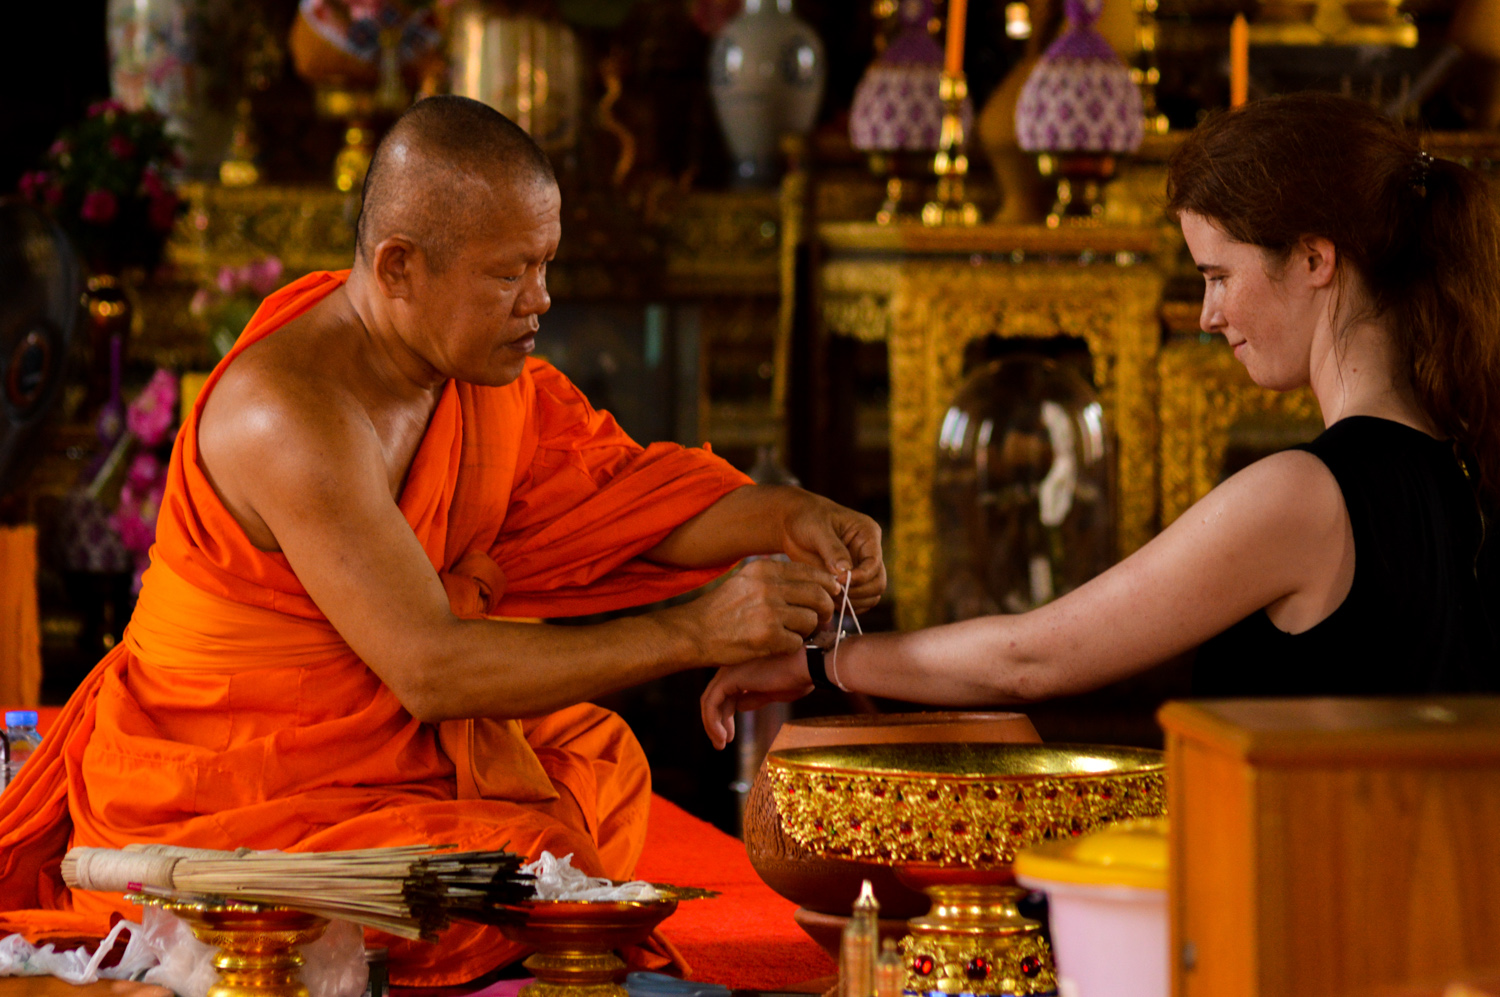 lady buying a bracelet from a monk - Six Non-Photography Tips to Super-Charge Your Travel Photography